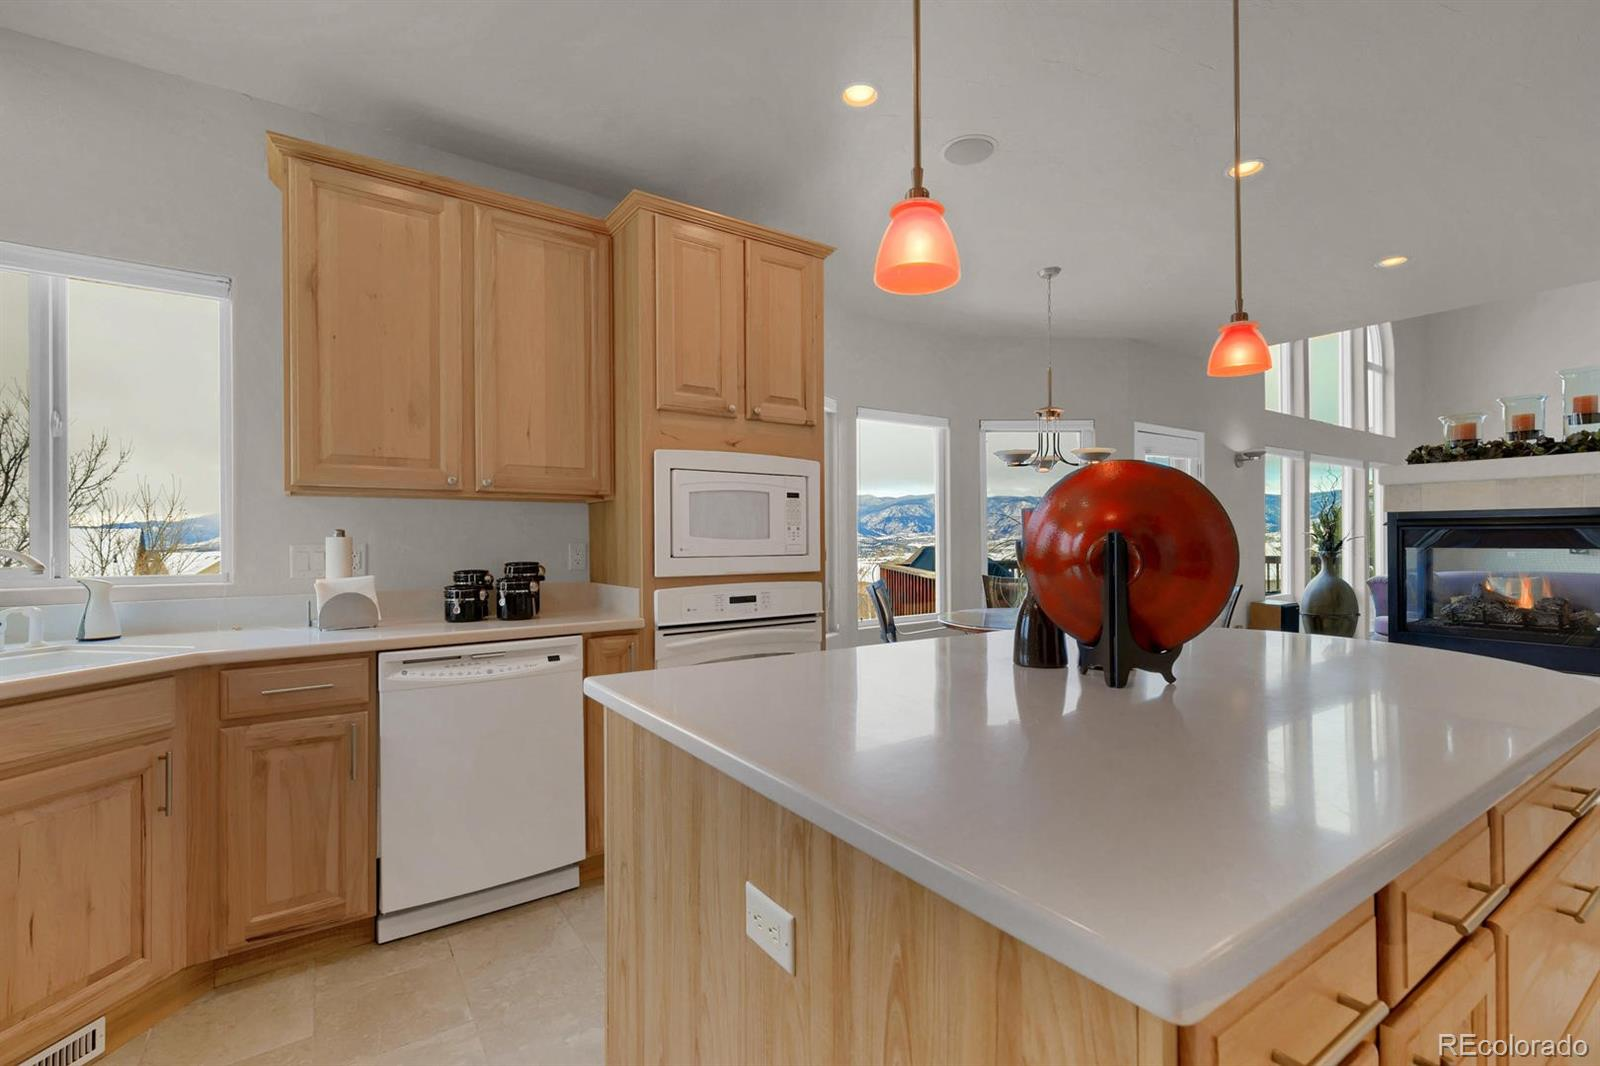 MLS# 5159811 - 14 - 207 Green Rock Place, Monument, CO 80132